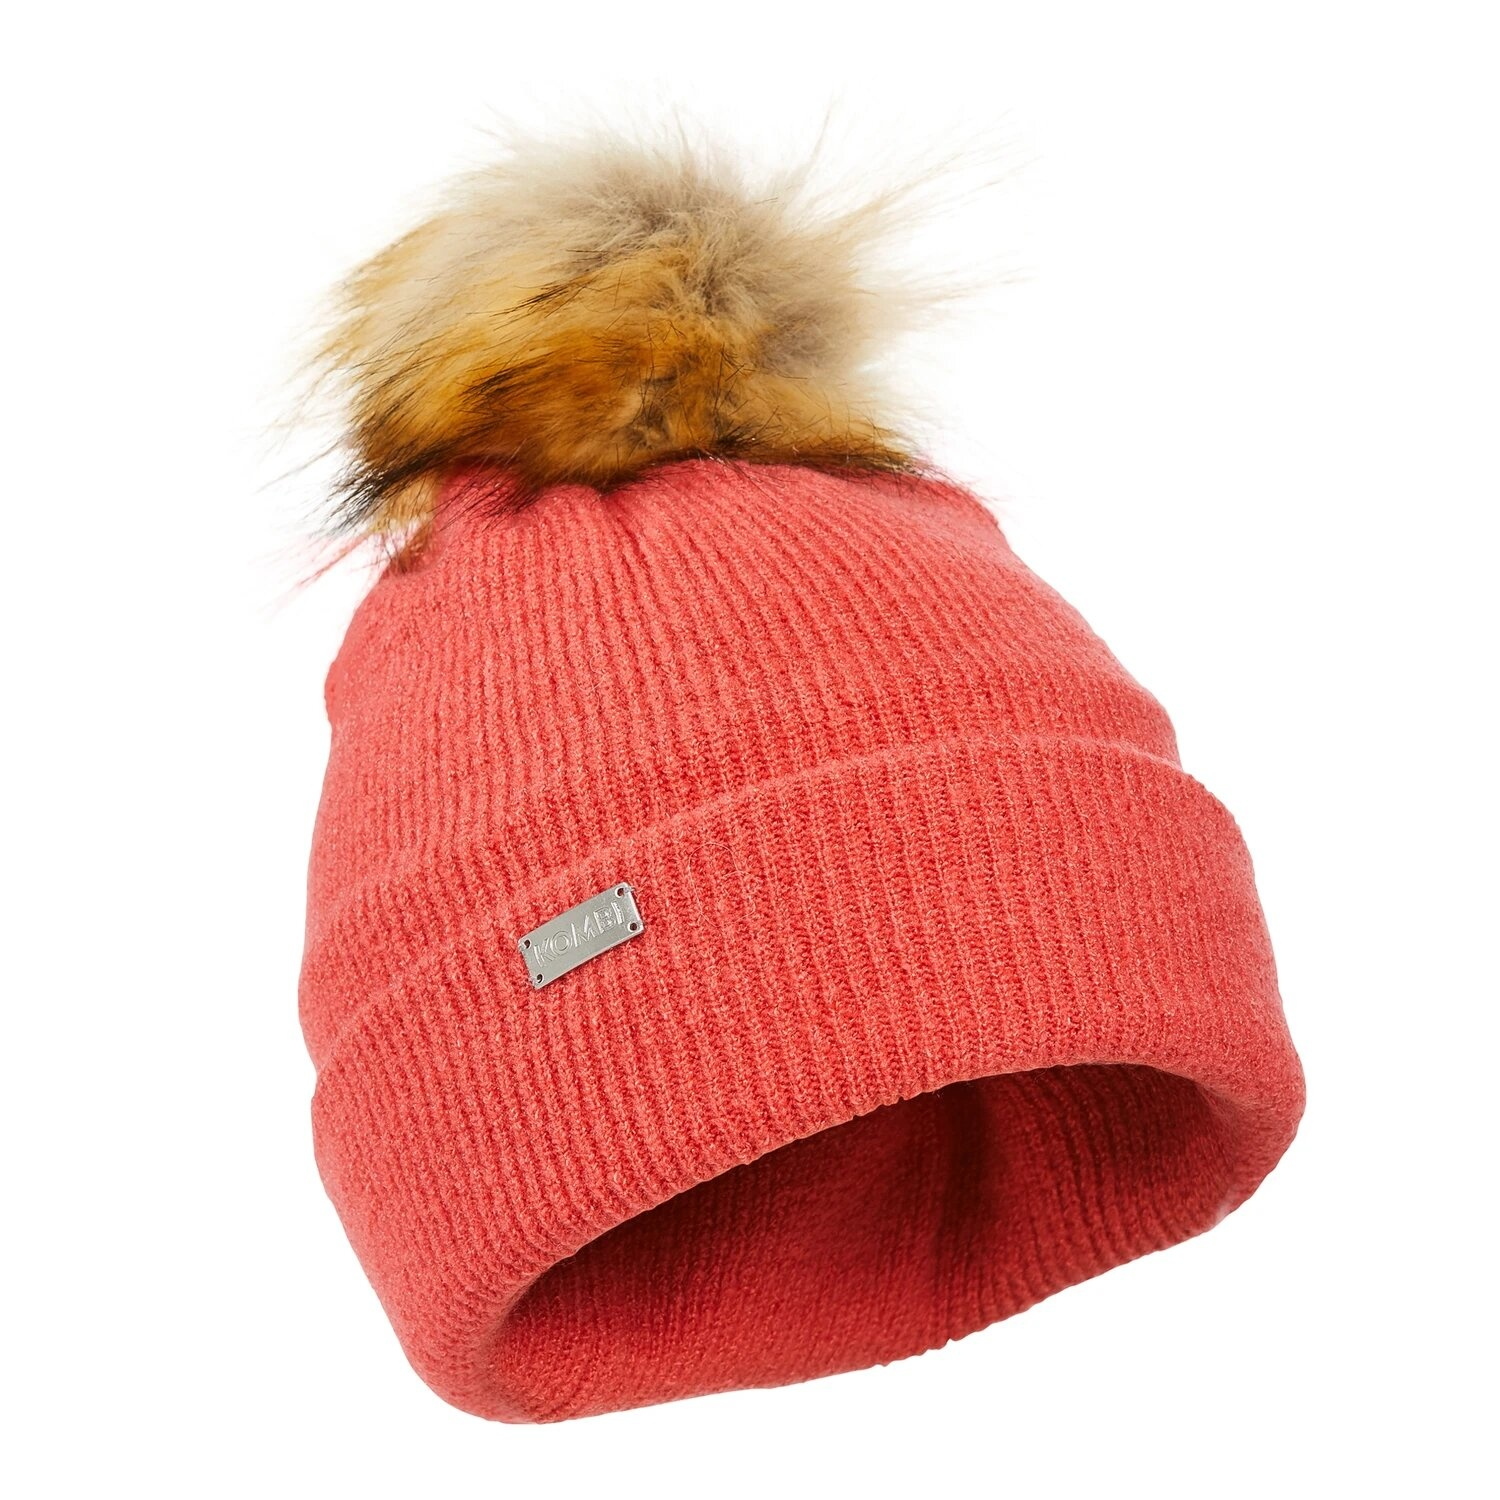 Kombi The Chic Hat, Assorted Colours